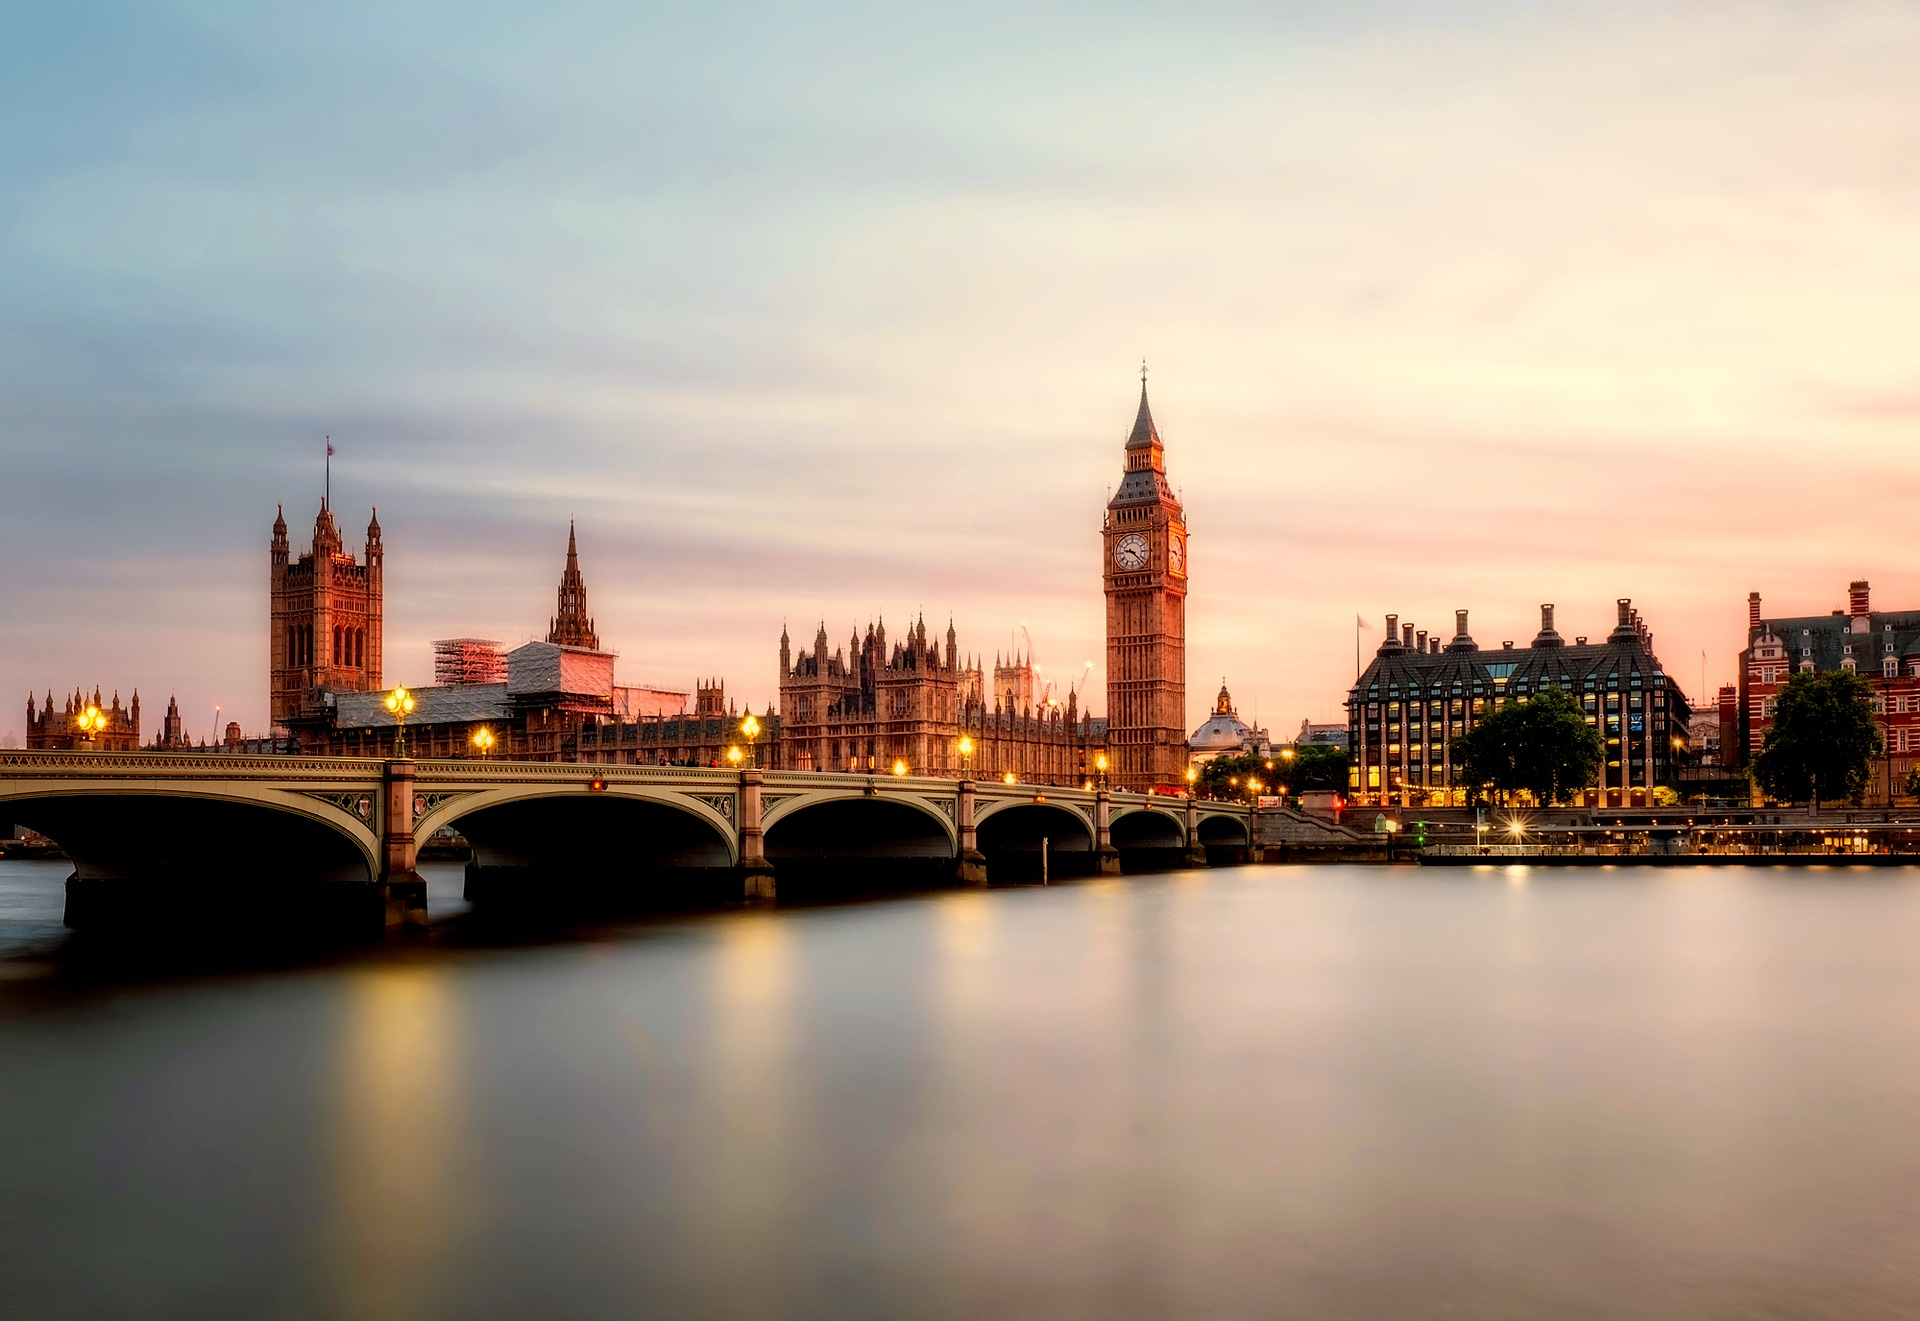 Delivering AV & LV Solutions for Multi-Purpose Spaces in Westminster